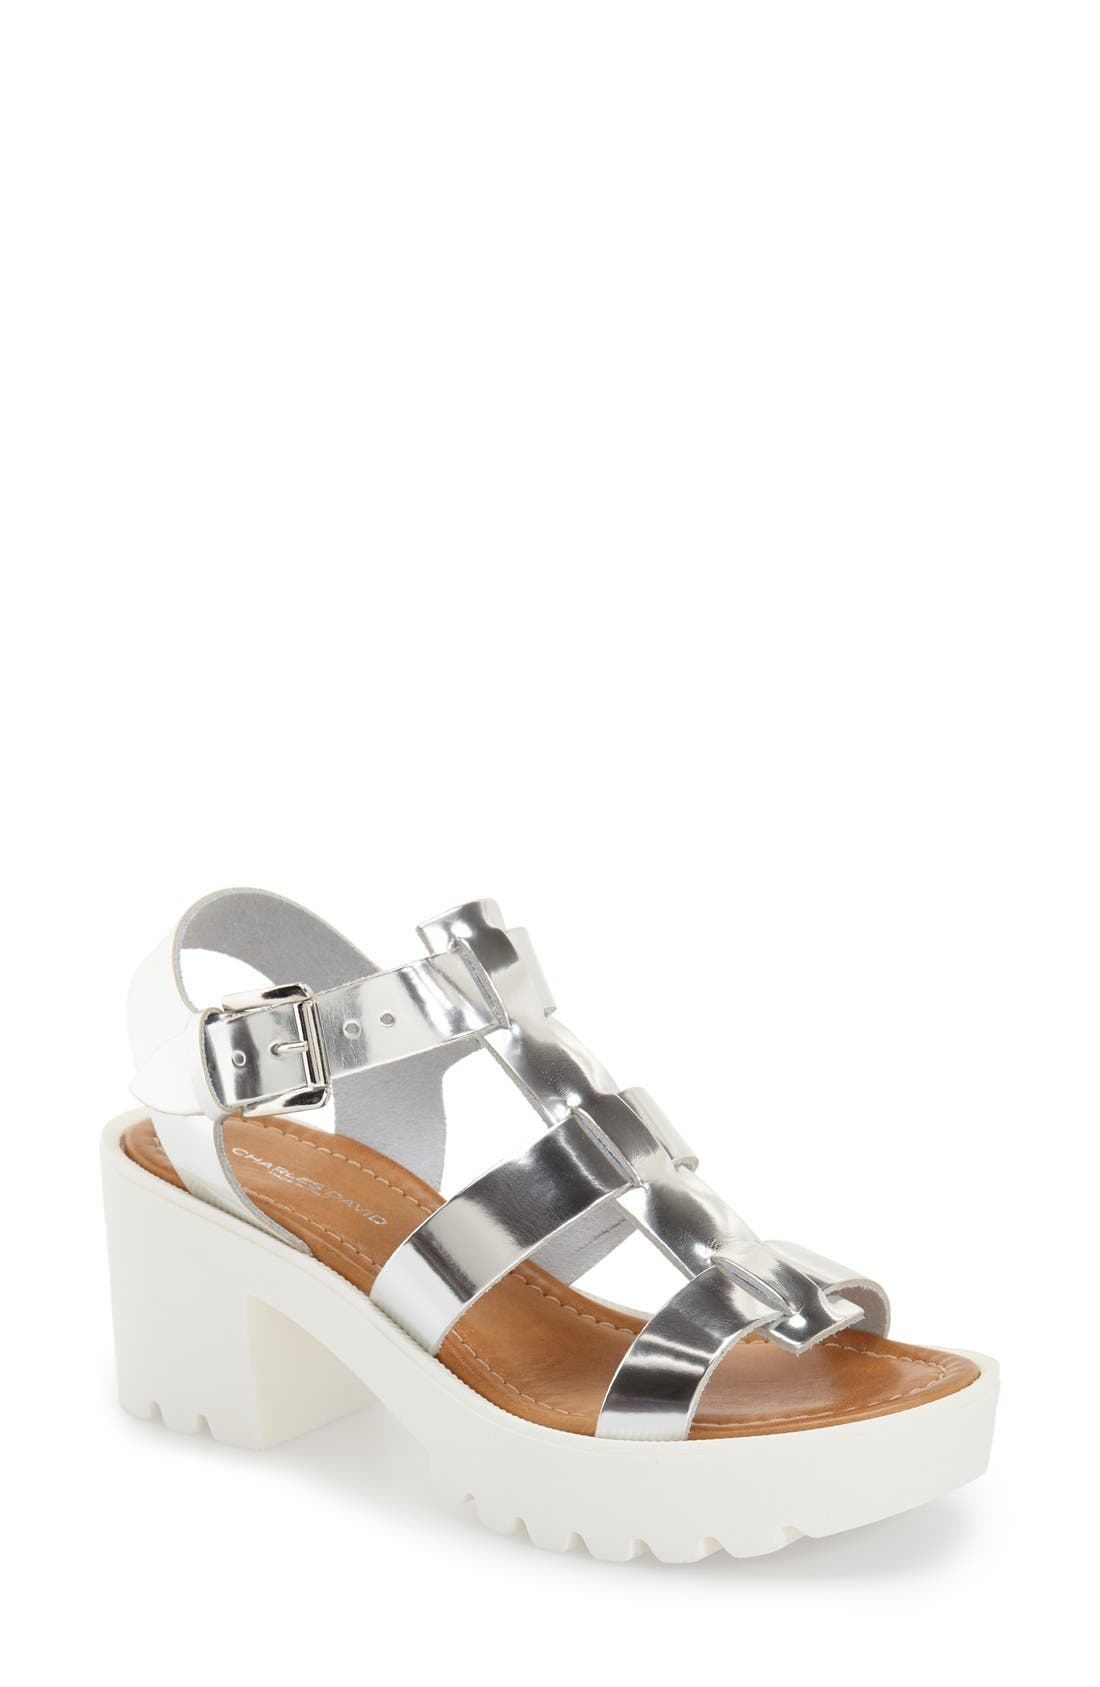 Alternate Image 1 Selected - Charles David 'Bella' Platform Sandal (Women)